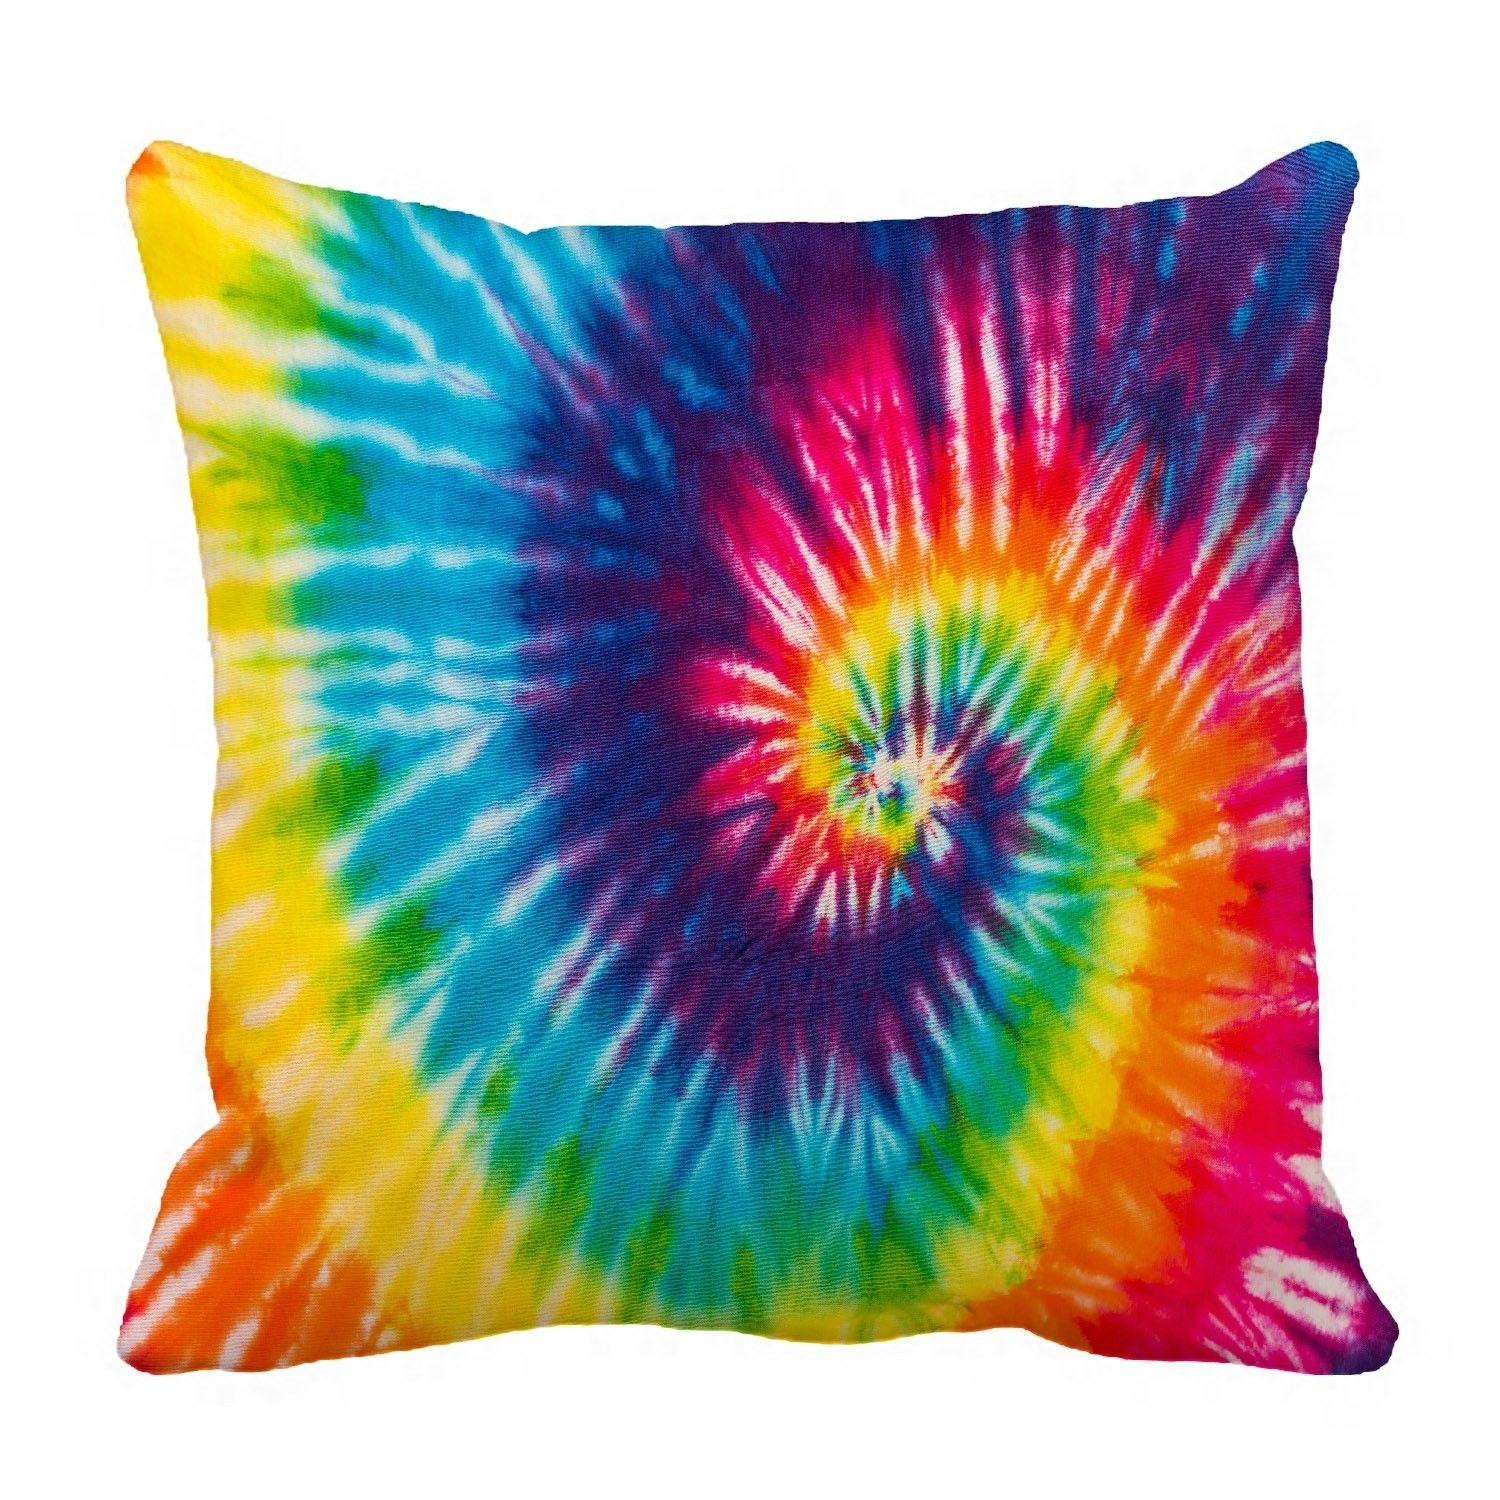 Abstract Swirl Design Tie Dye Pillow?Case?Pillow?Cover?Cushion?Cover